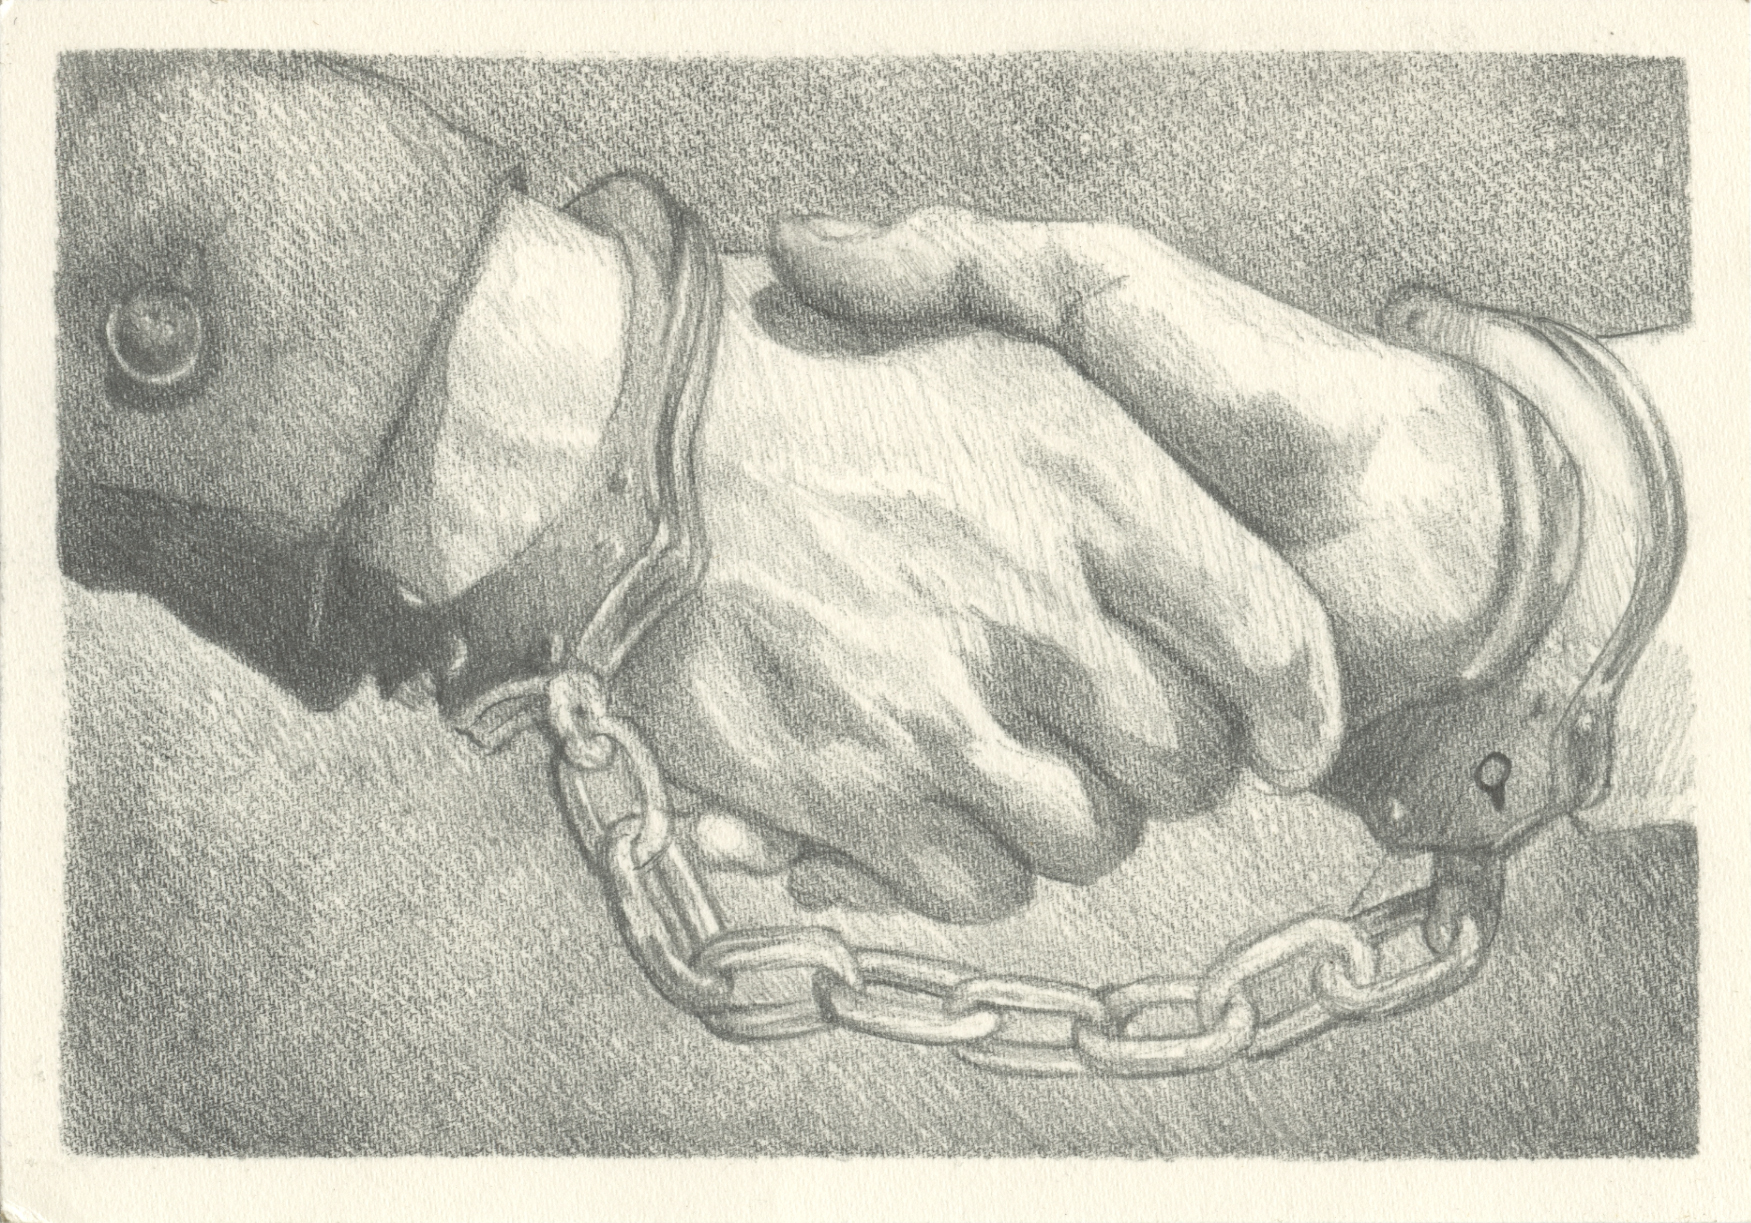 Lot 599 State Deal - Pencil on Paper